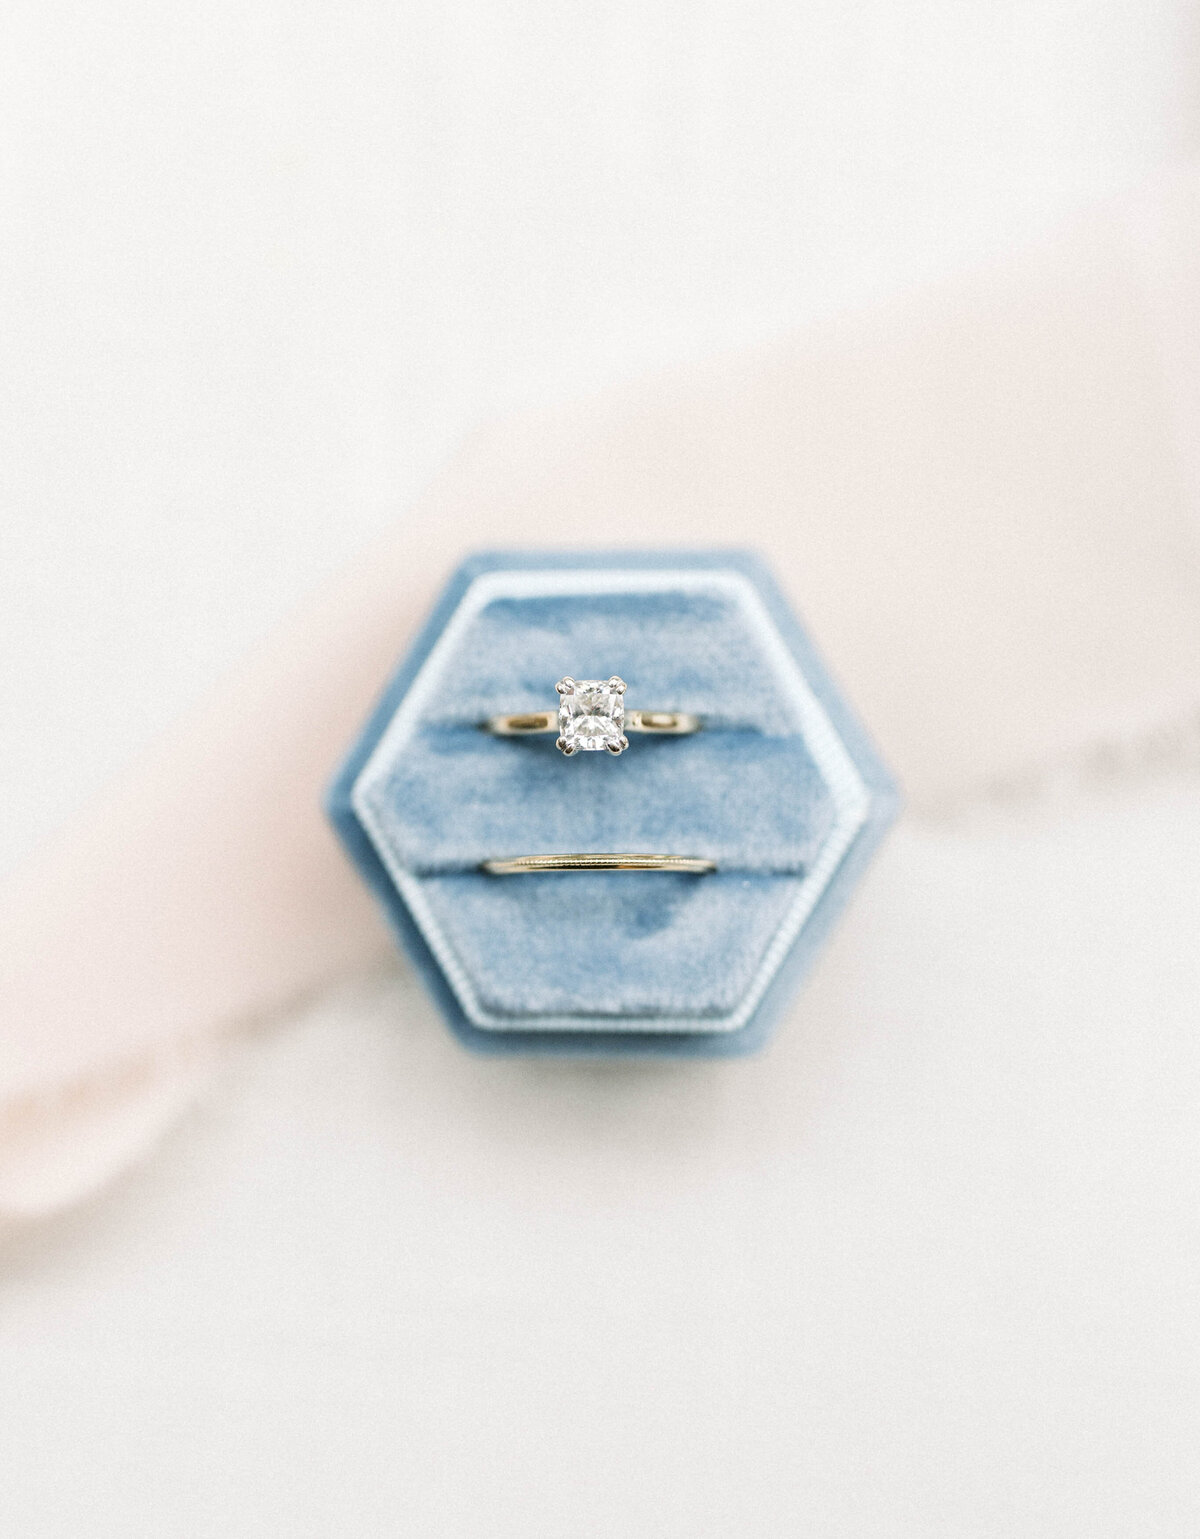 ring-detail-shot-missouri-wedding-photographer